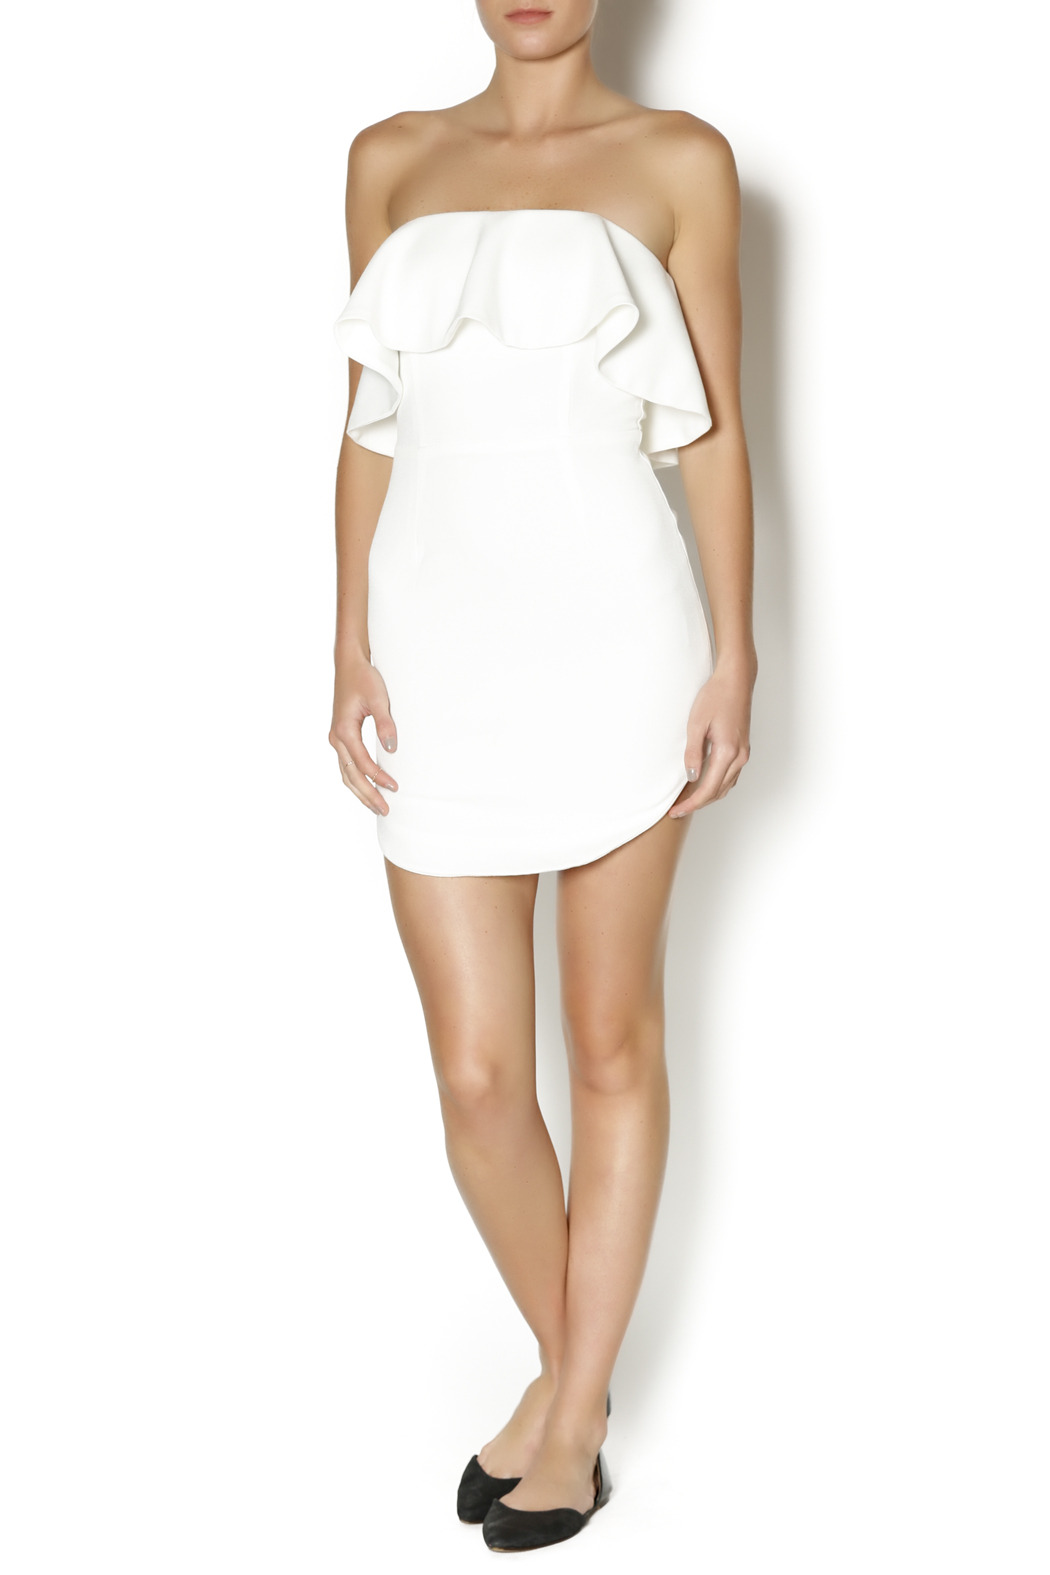 luxxel Tiered White Dress - Front Full Image